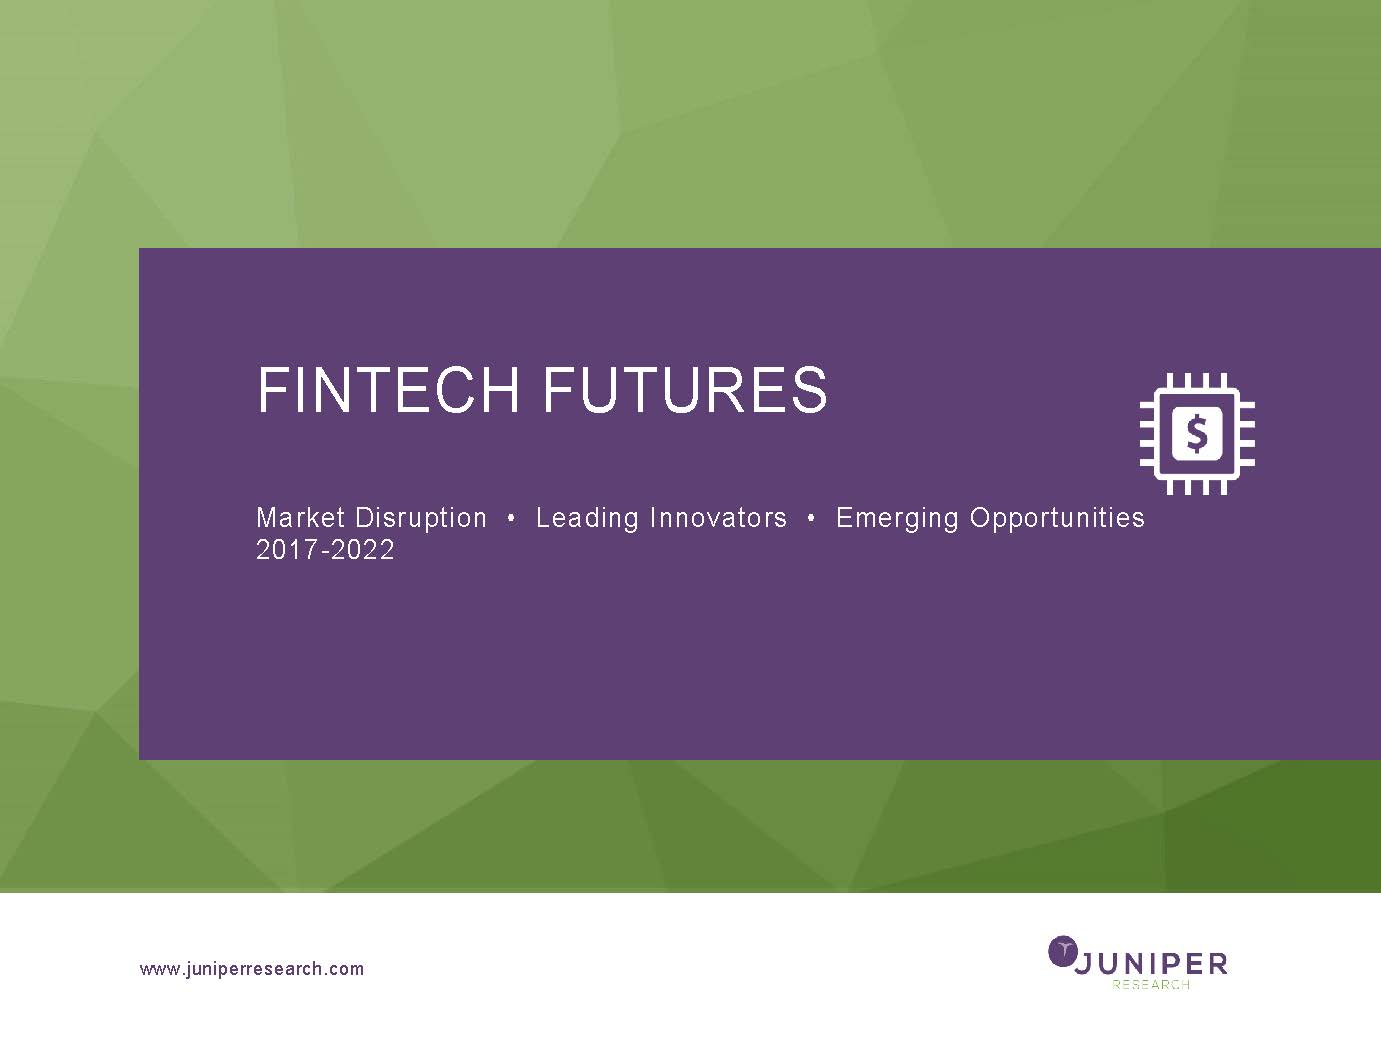 Fintech Futures - Deep Dive Data & Forecasting 2017-2022